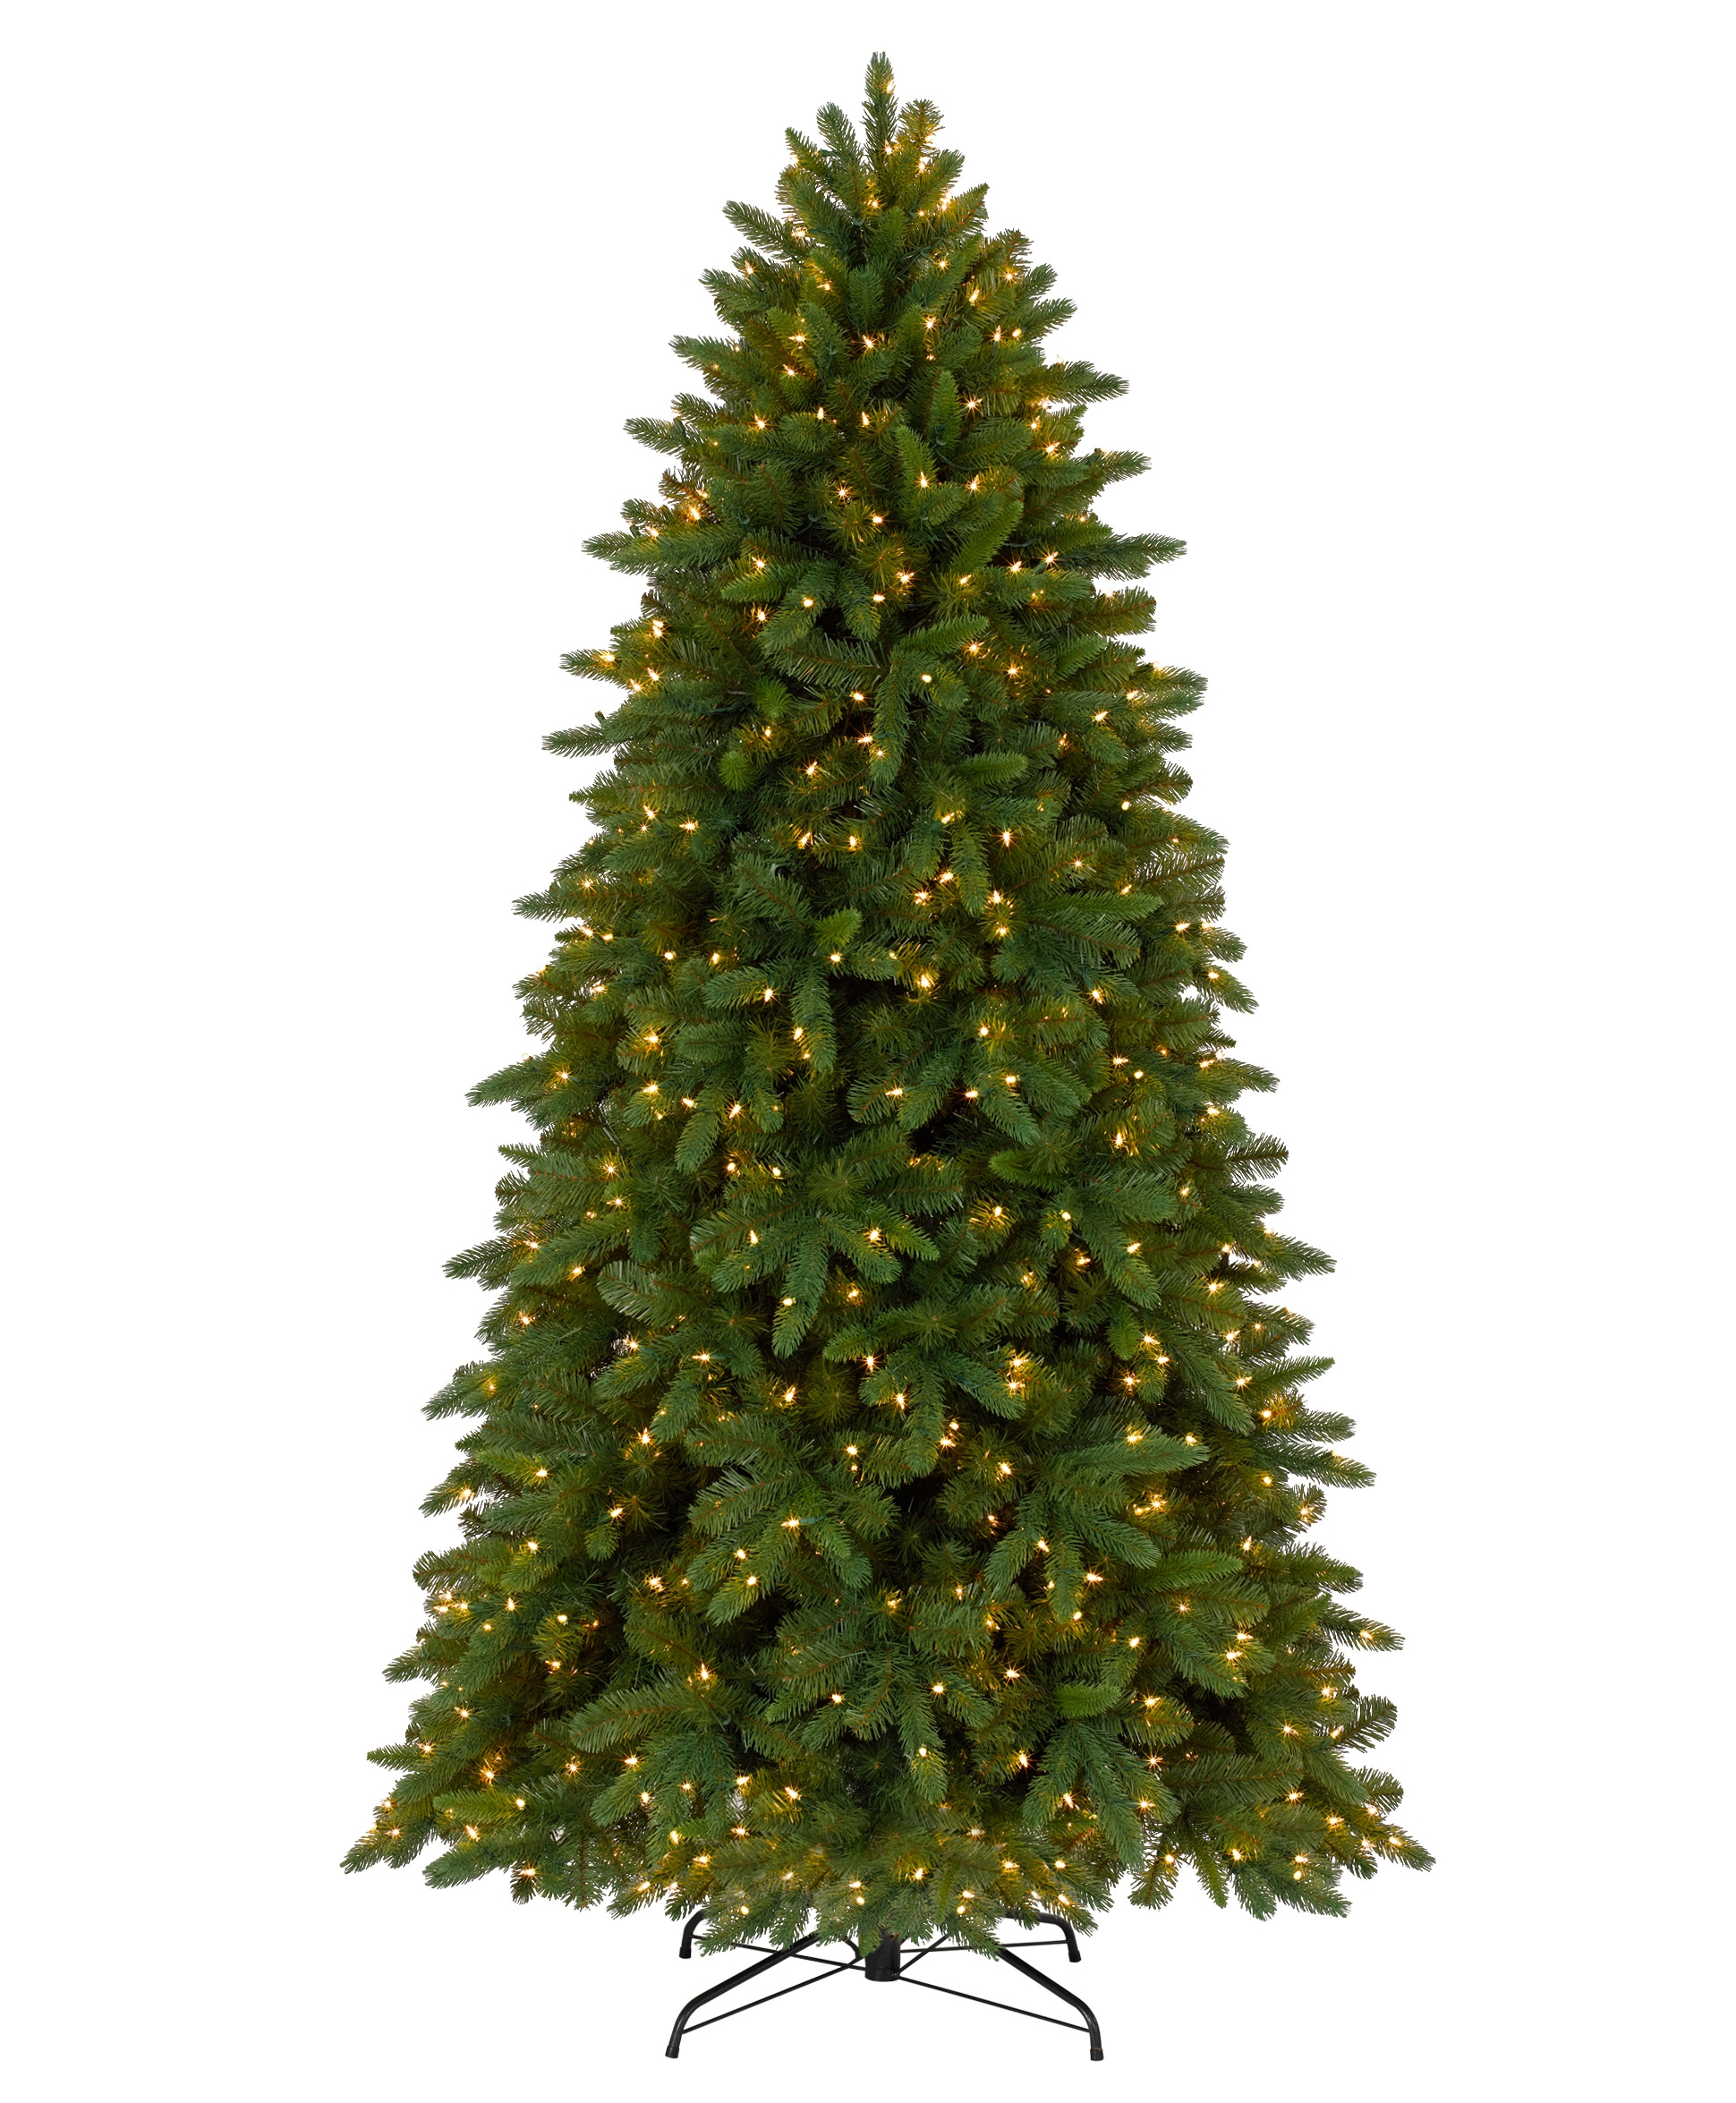 Most Popular Christmas Tree: Top 10 Most Expensive Christmas Trees Ever